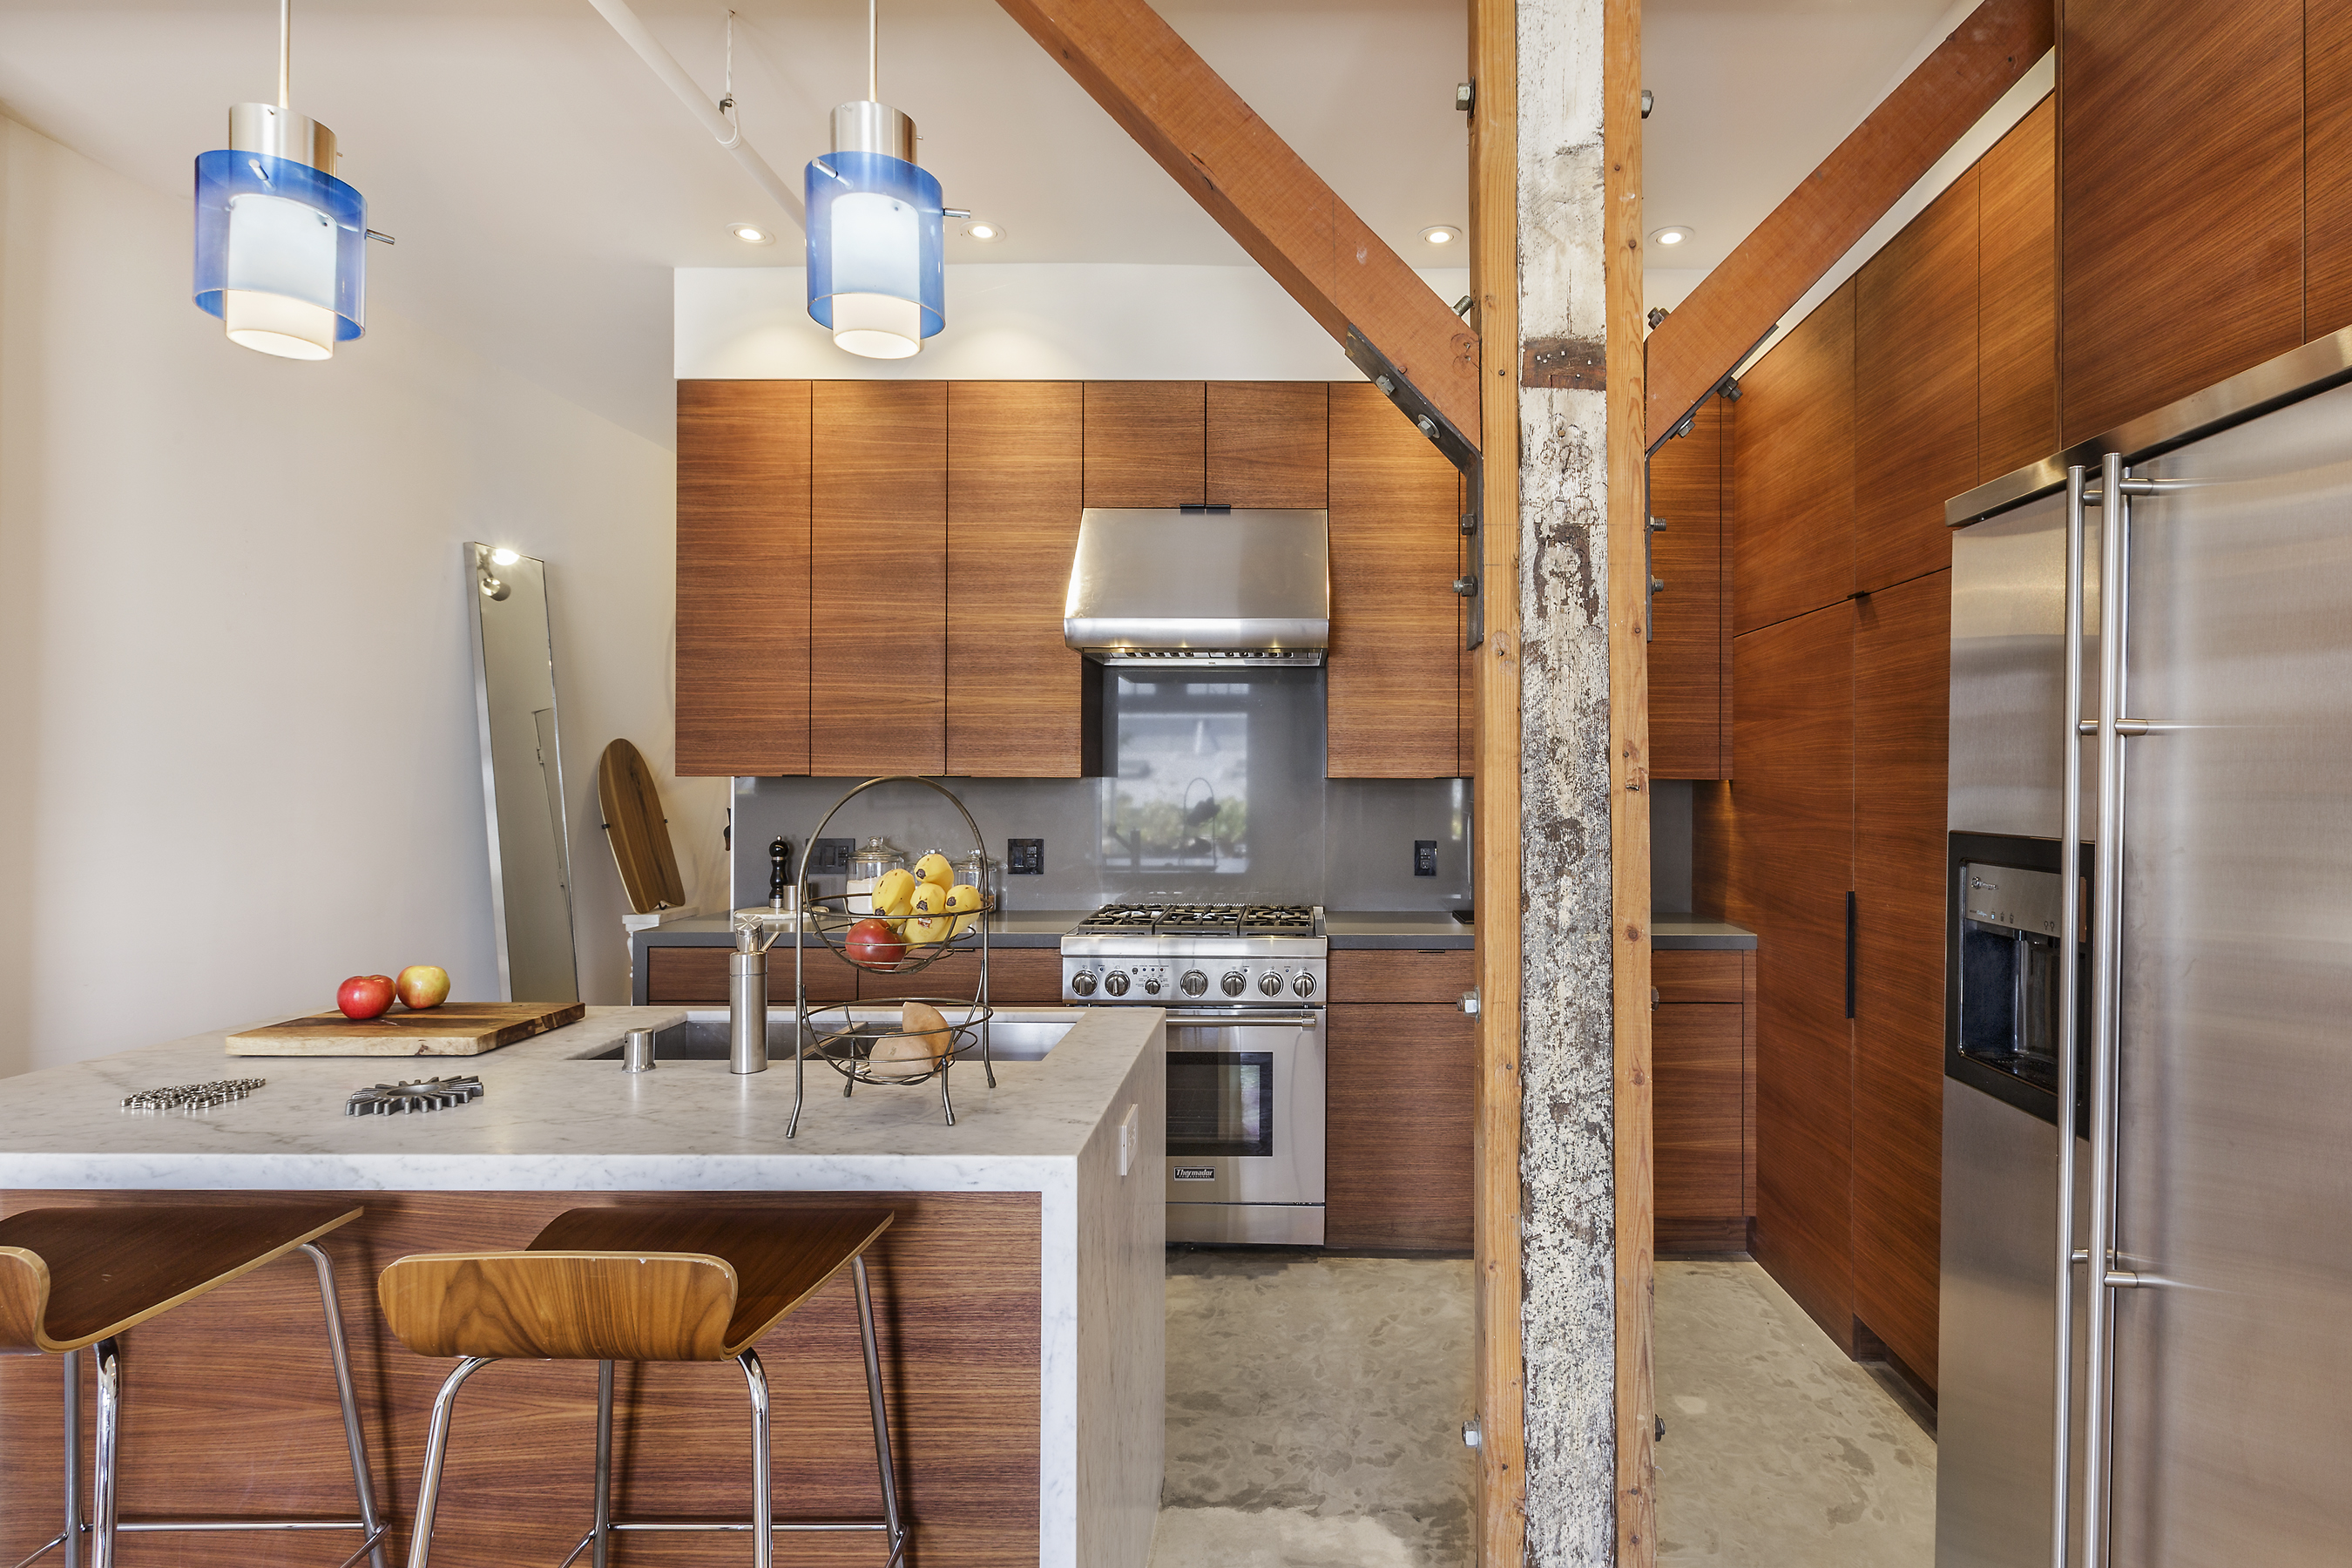 2169 Folsom M202 | Allied Box Factory Lofts | Mission District | $1,375,000